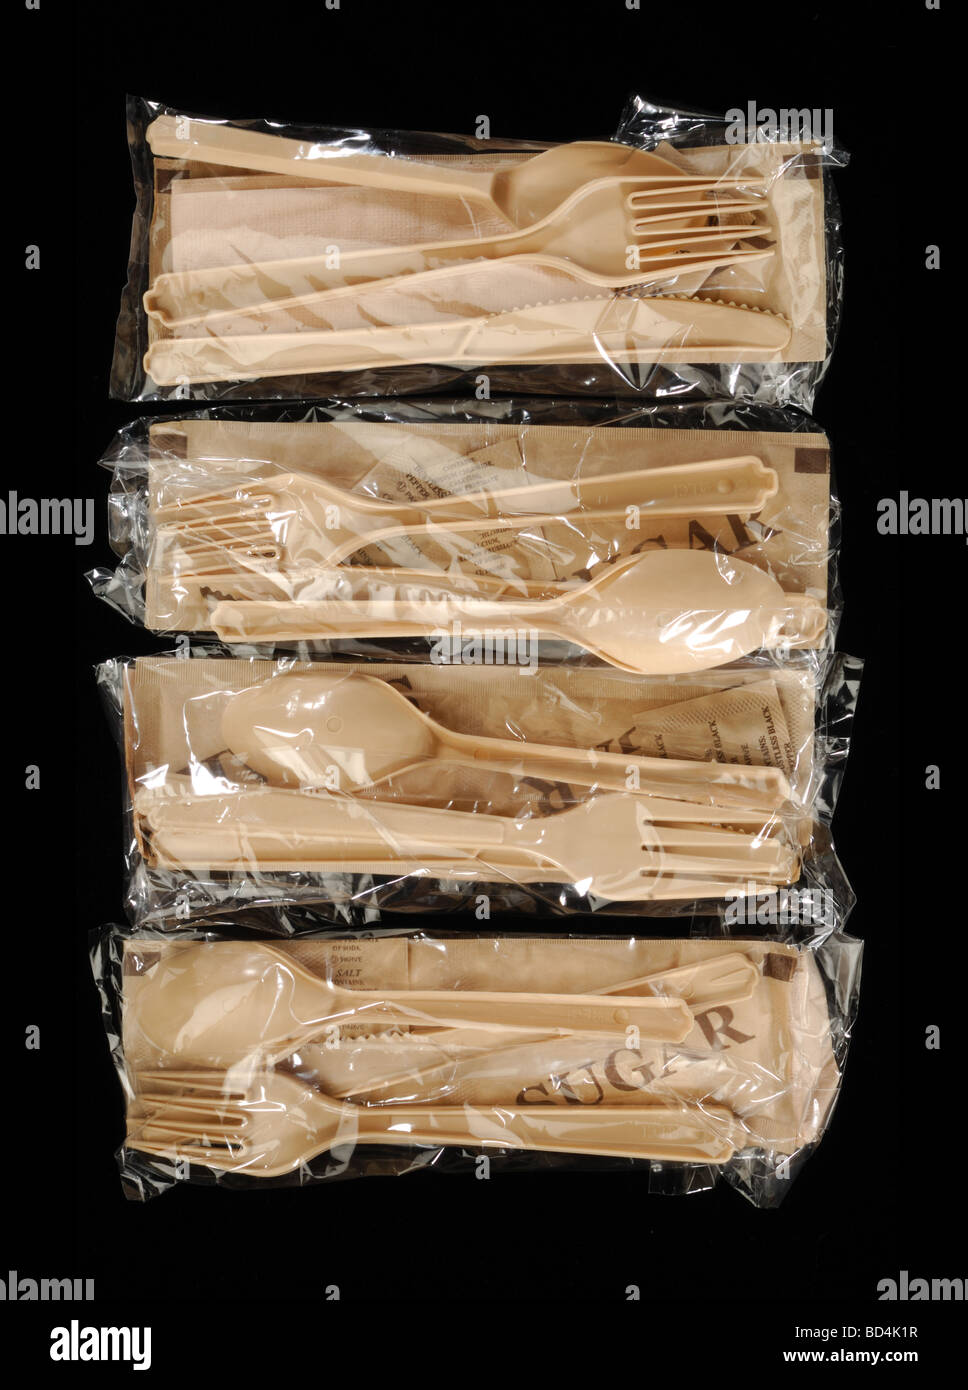 Four plastic bags with eating utensils on a black background - Stock Image